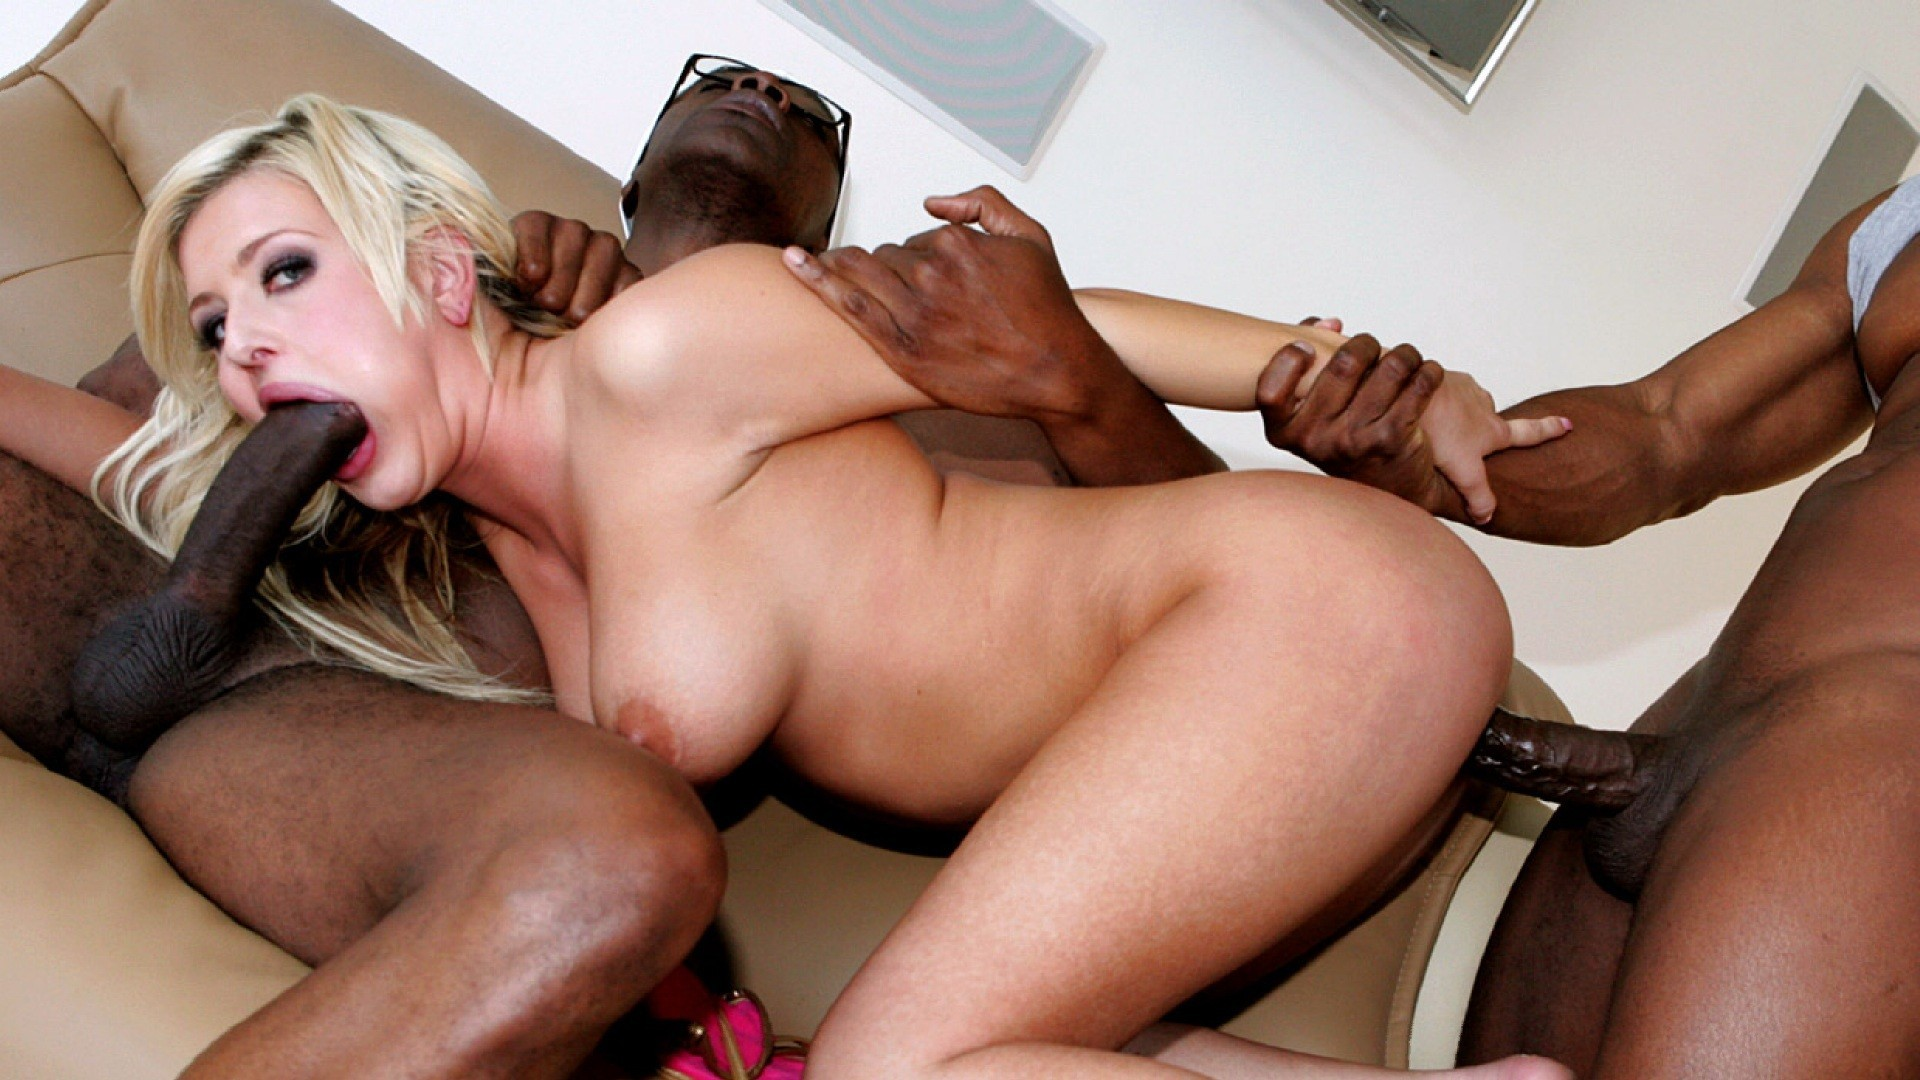 Blond scottland interracial porn pics